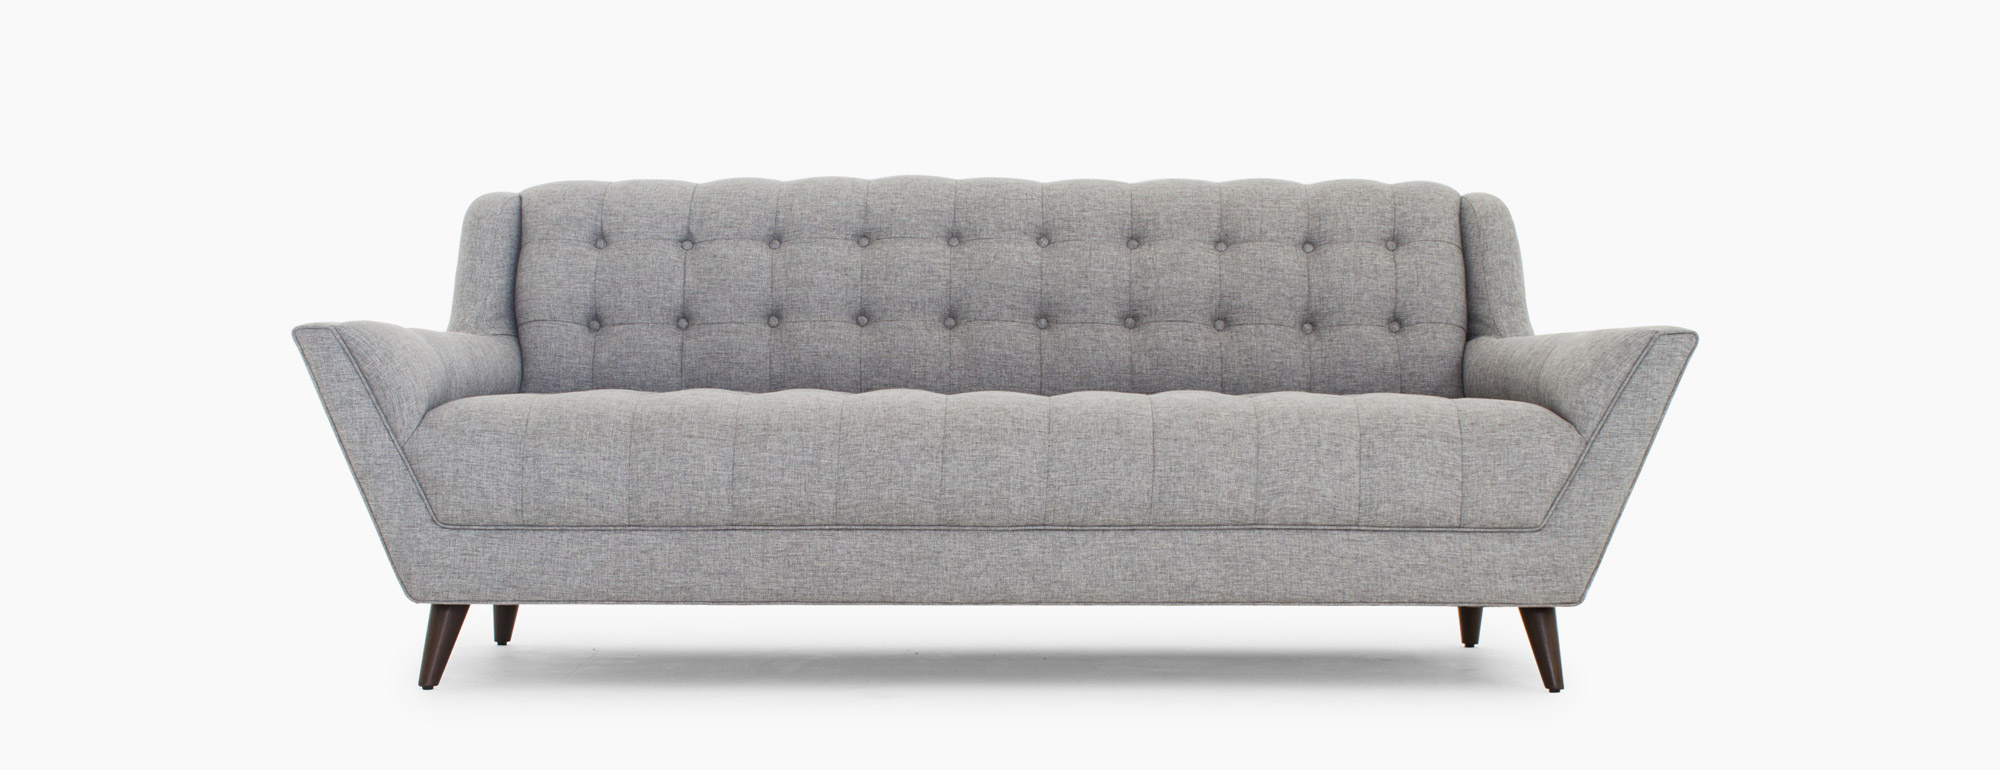 hero-fitzgerald-sofa-1